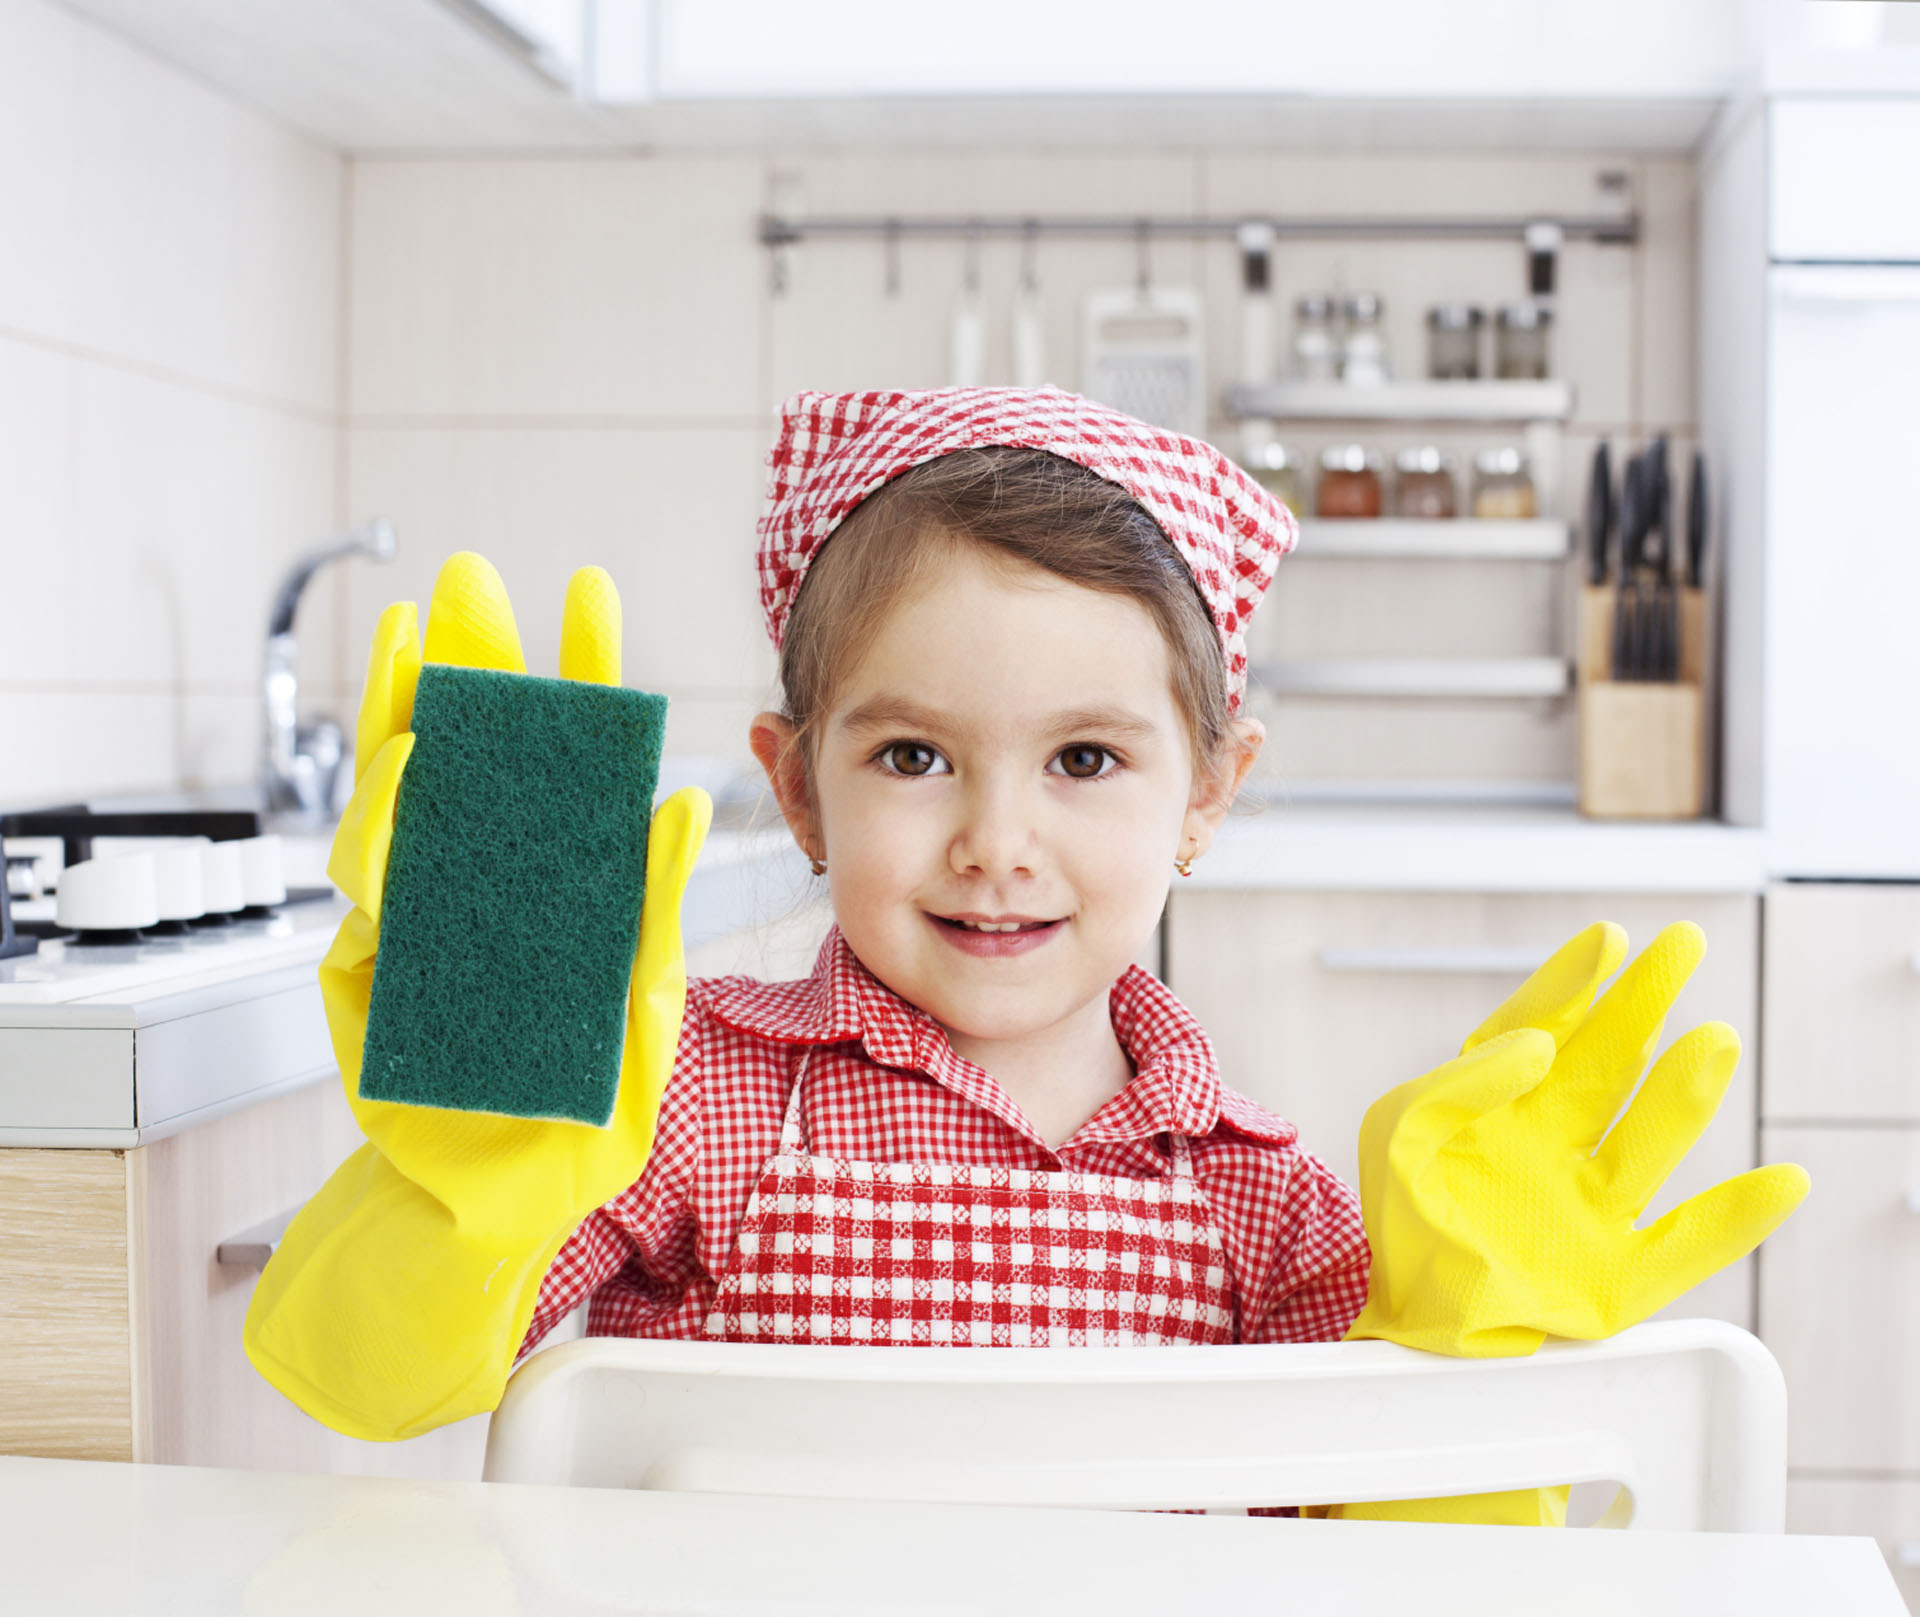 children cleaning up - HD1888×1591